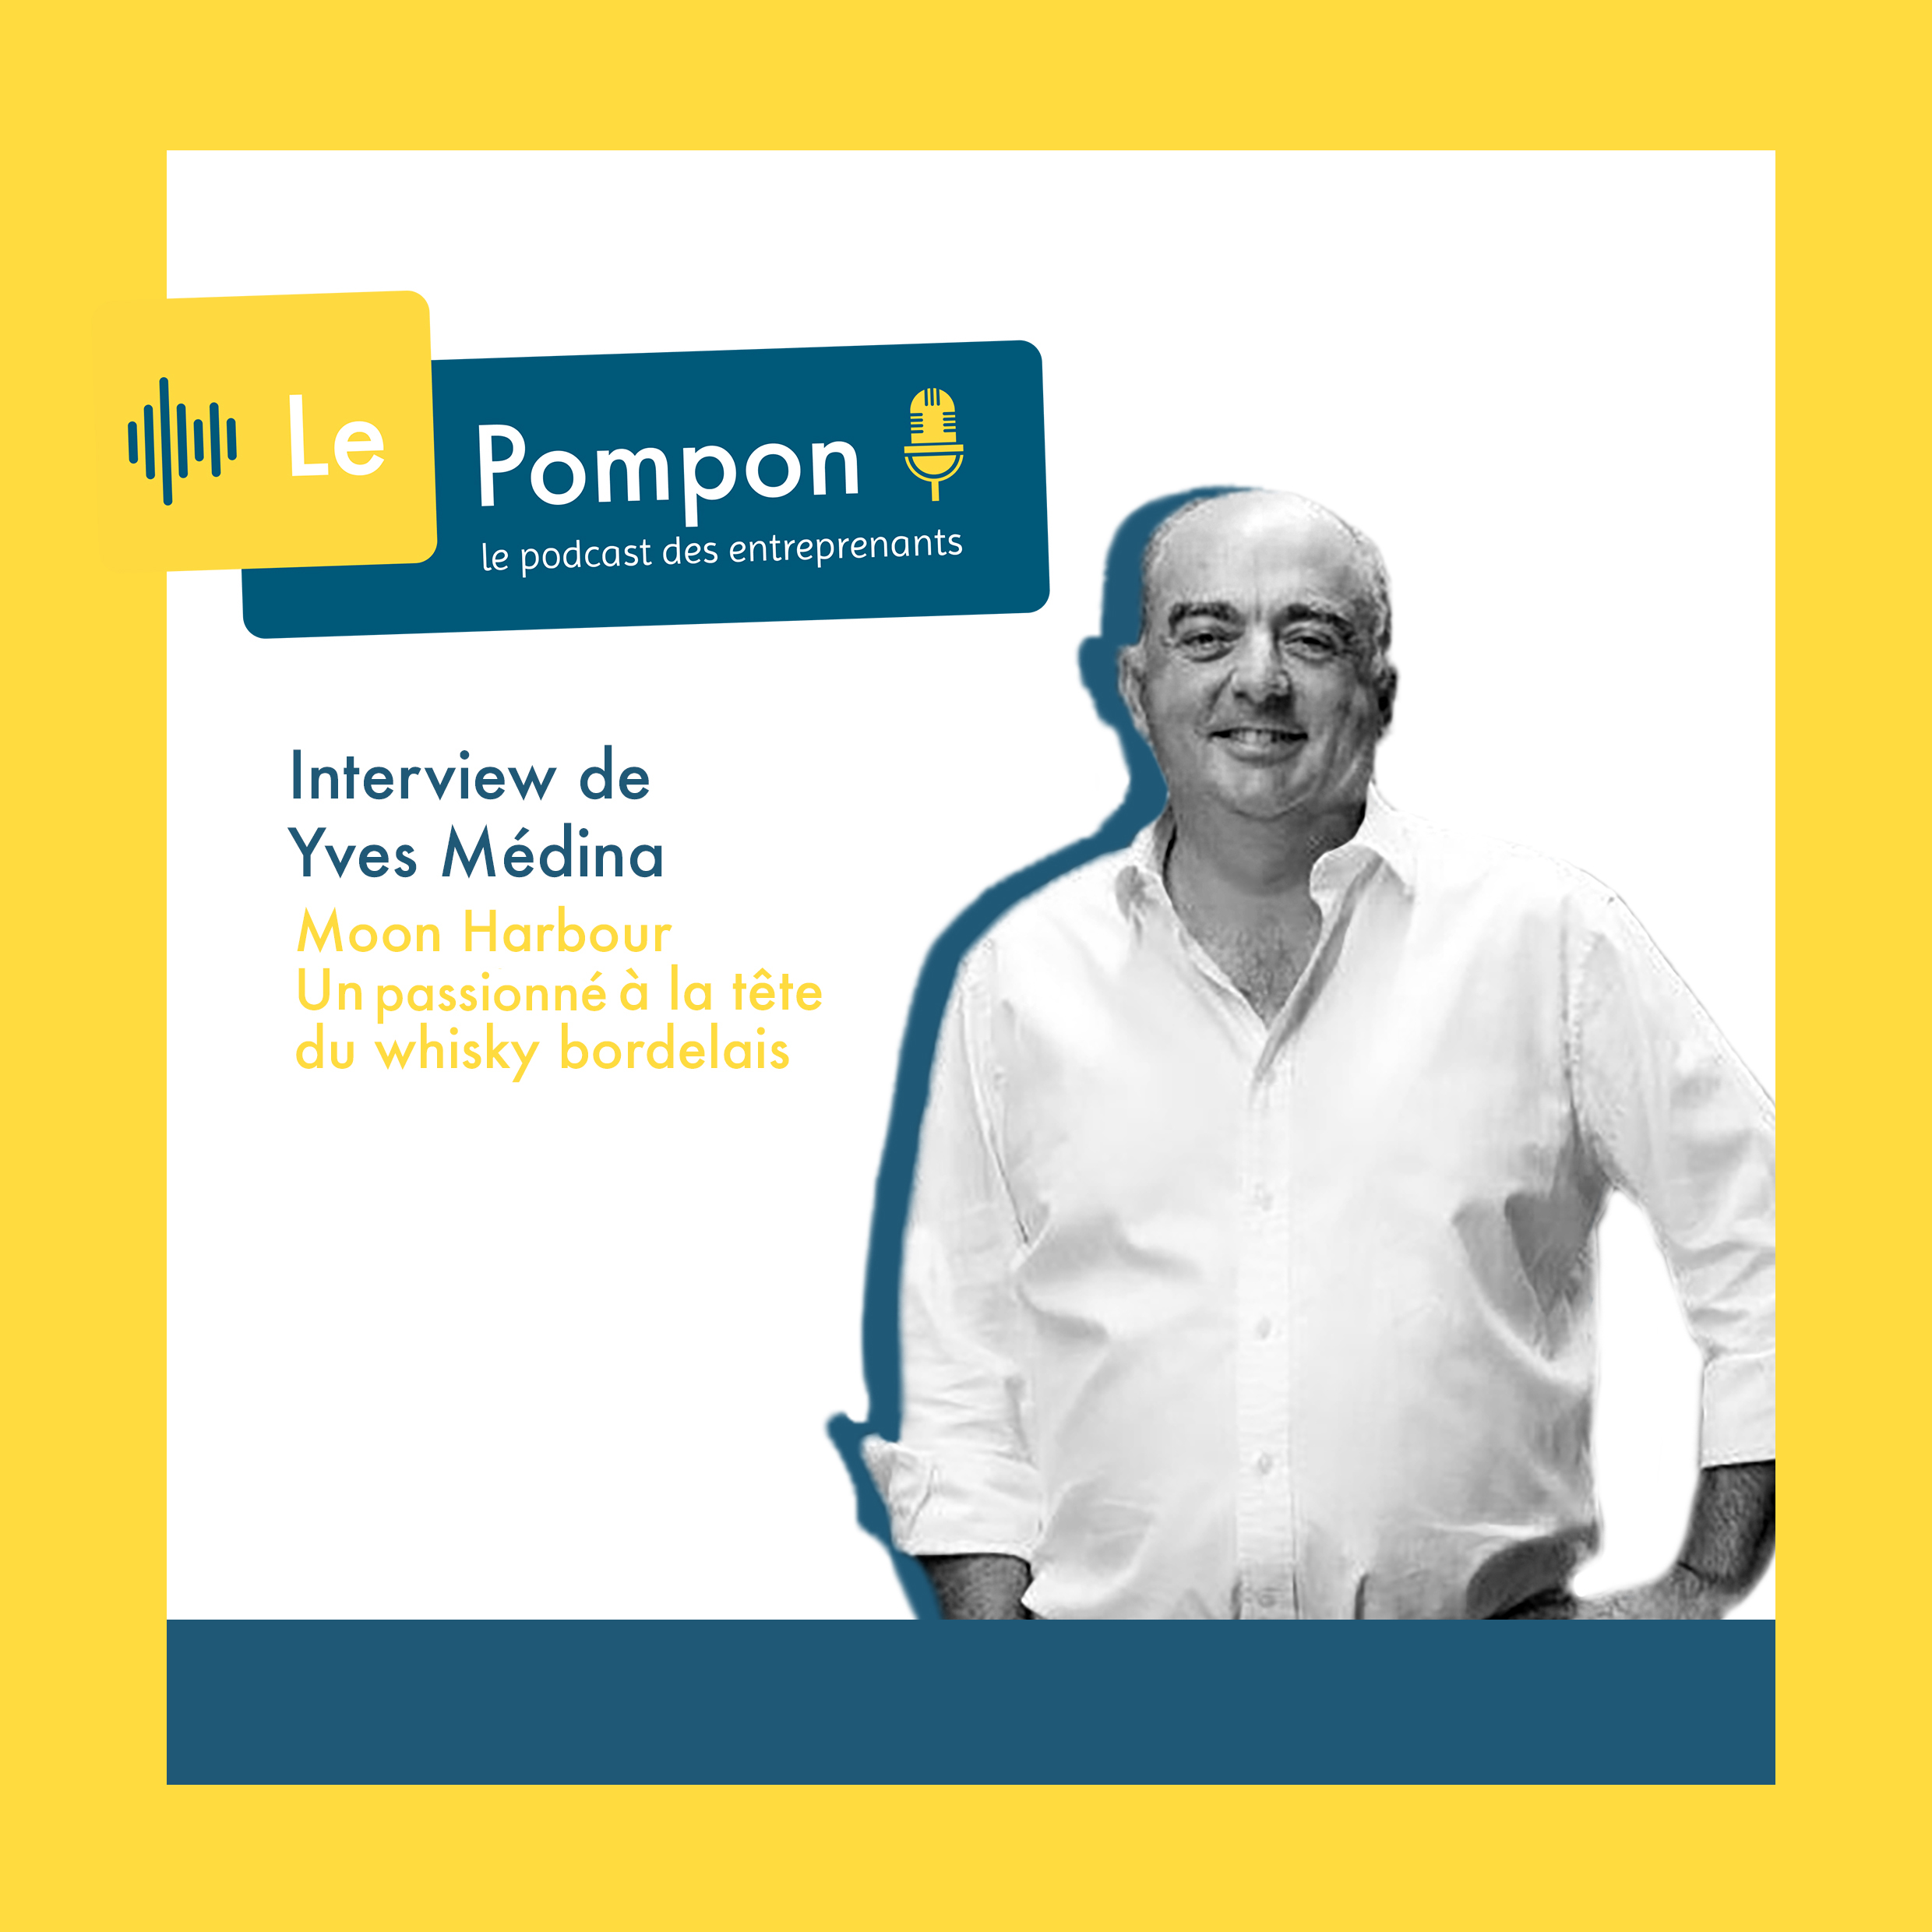 Illustration de l'épisode 1 du Podcast Le Pompon : Yves Médina, Moon Harbour